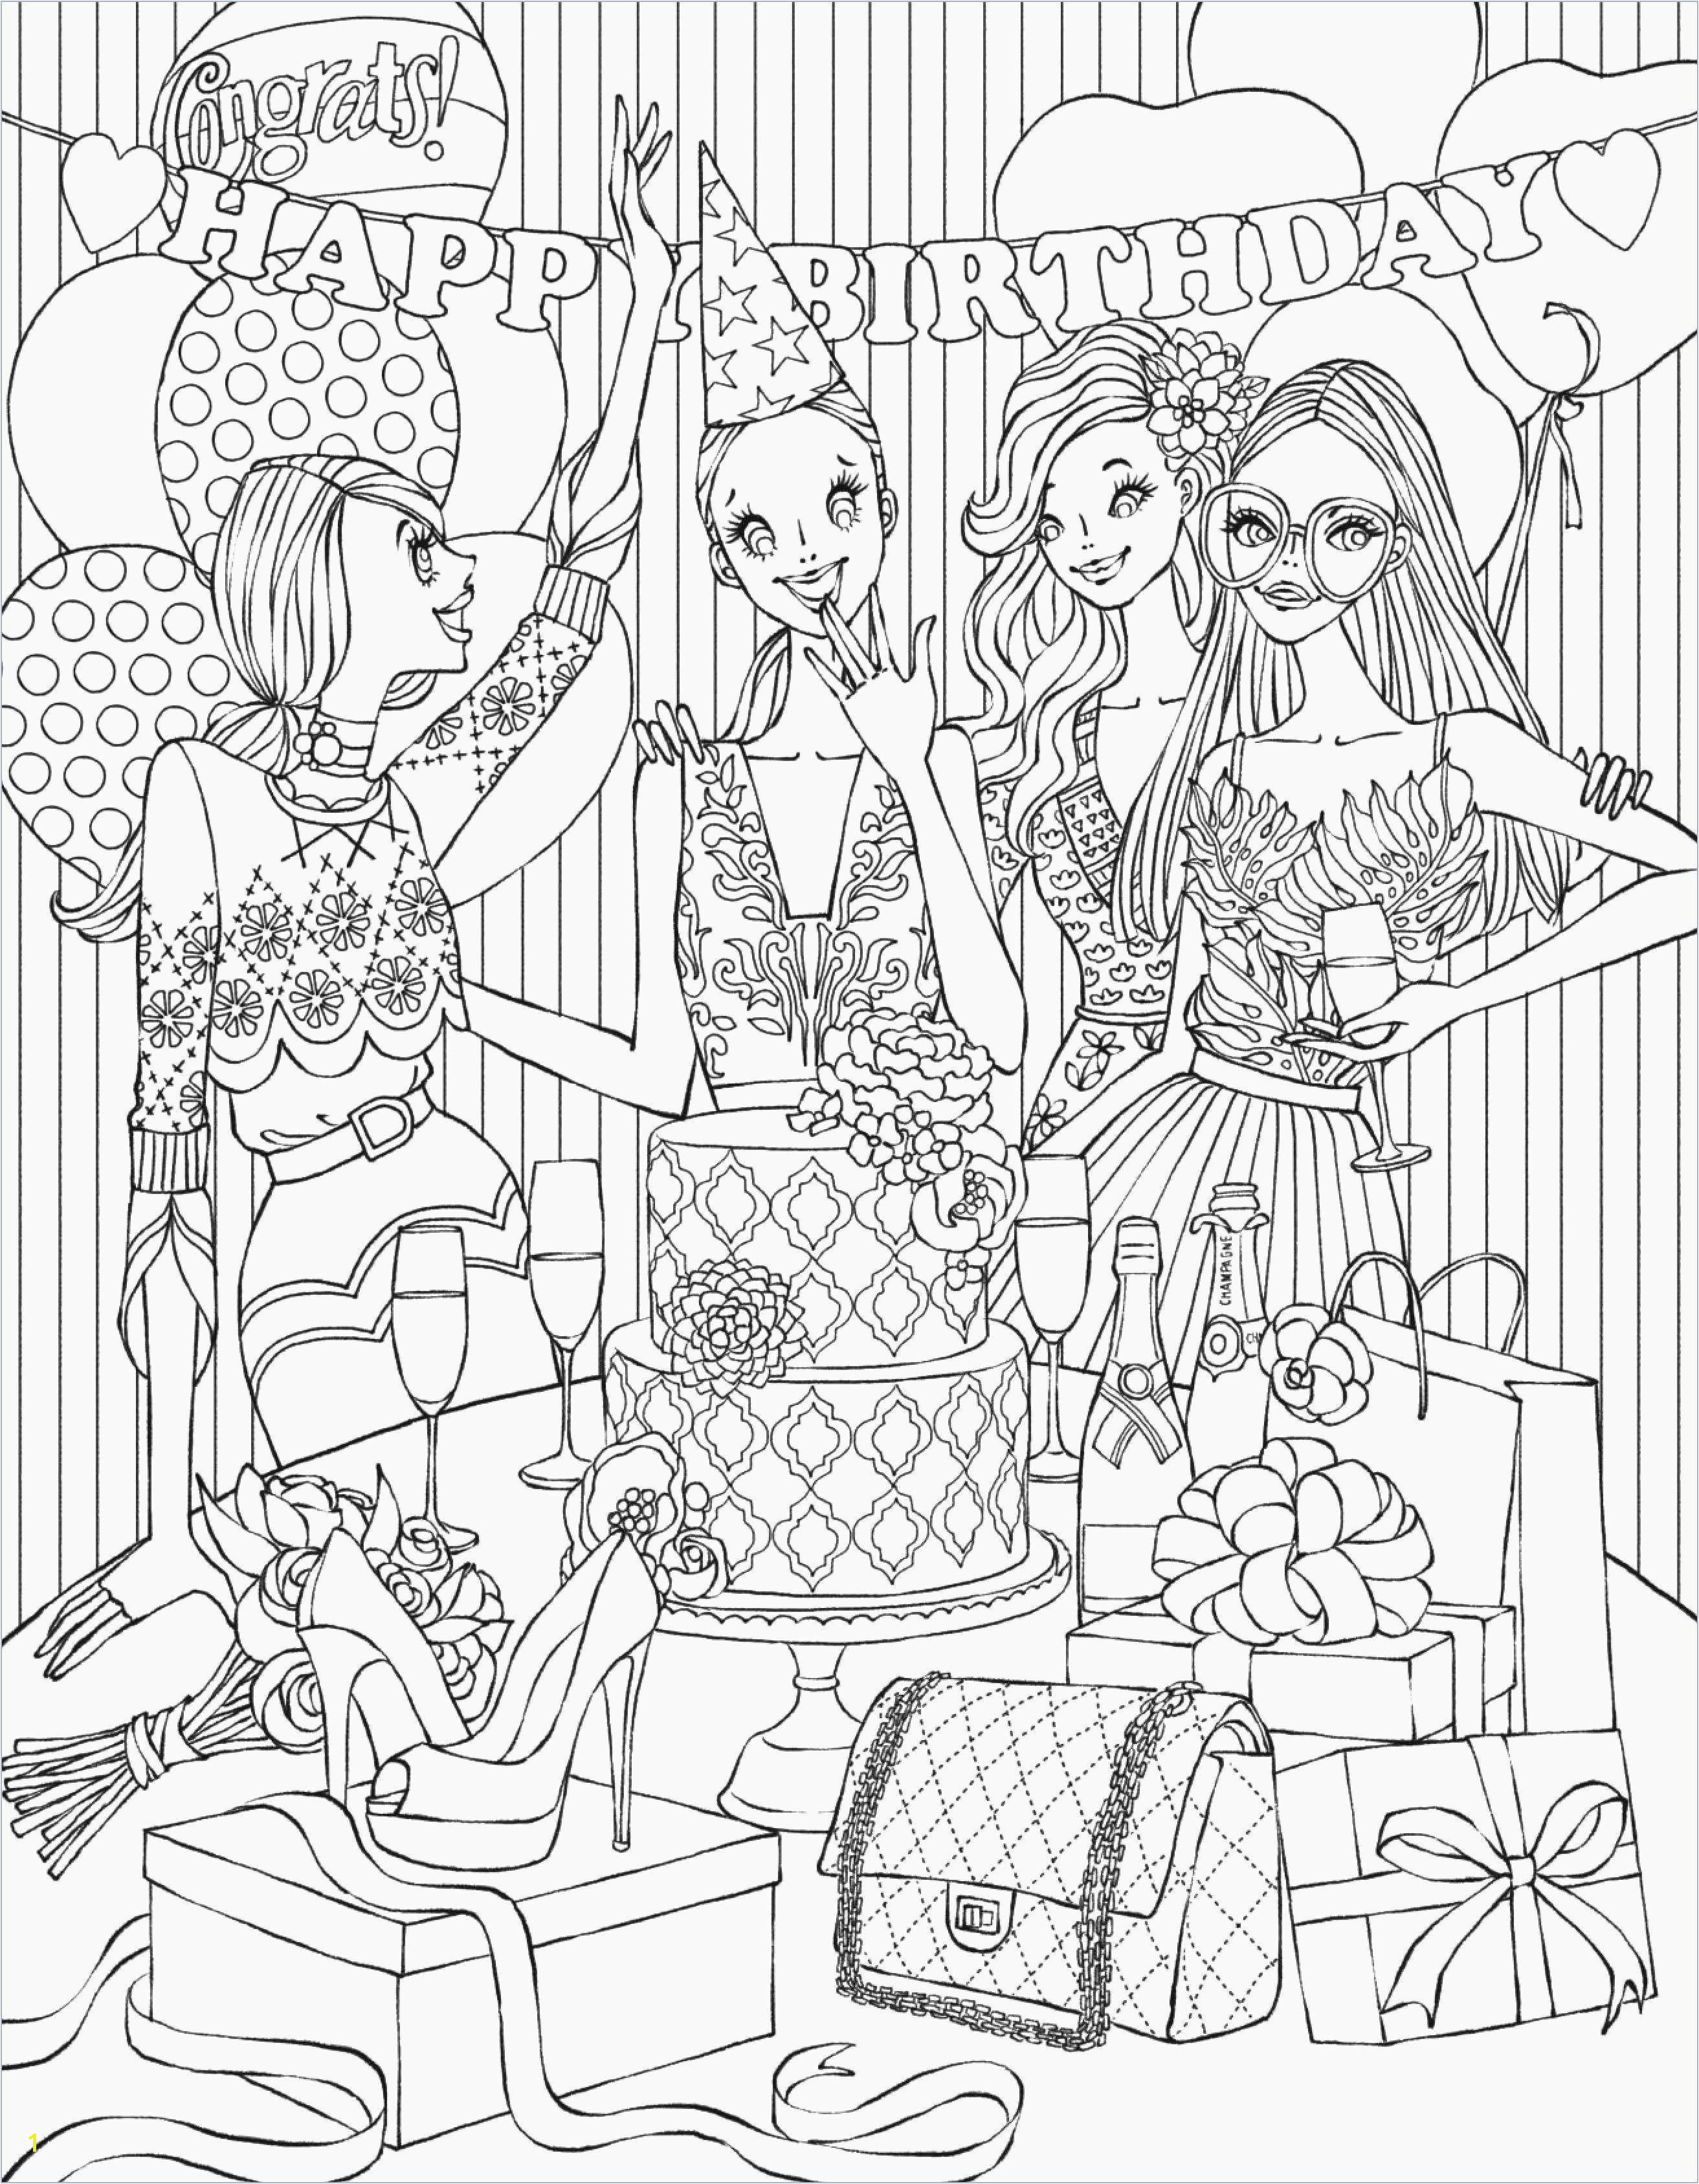 Printable Coloring Pages for Kids Elegant Design Coloring Pages for Kids Best Printable Coloring Book 0d